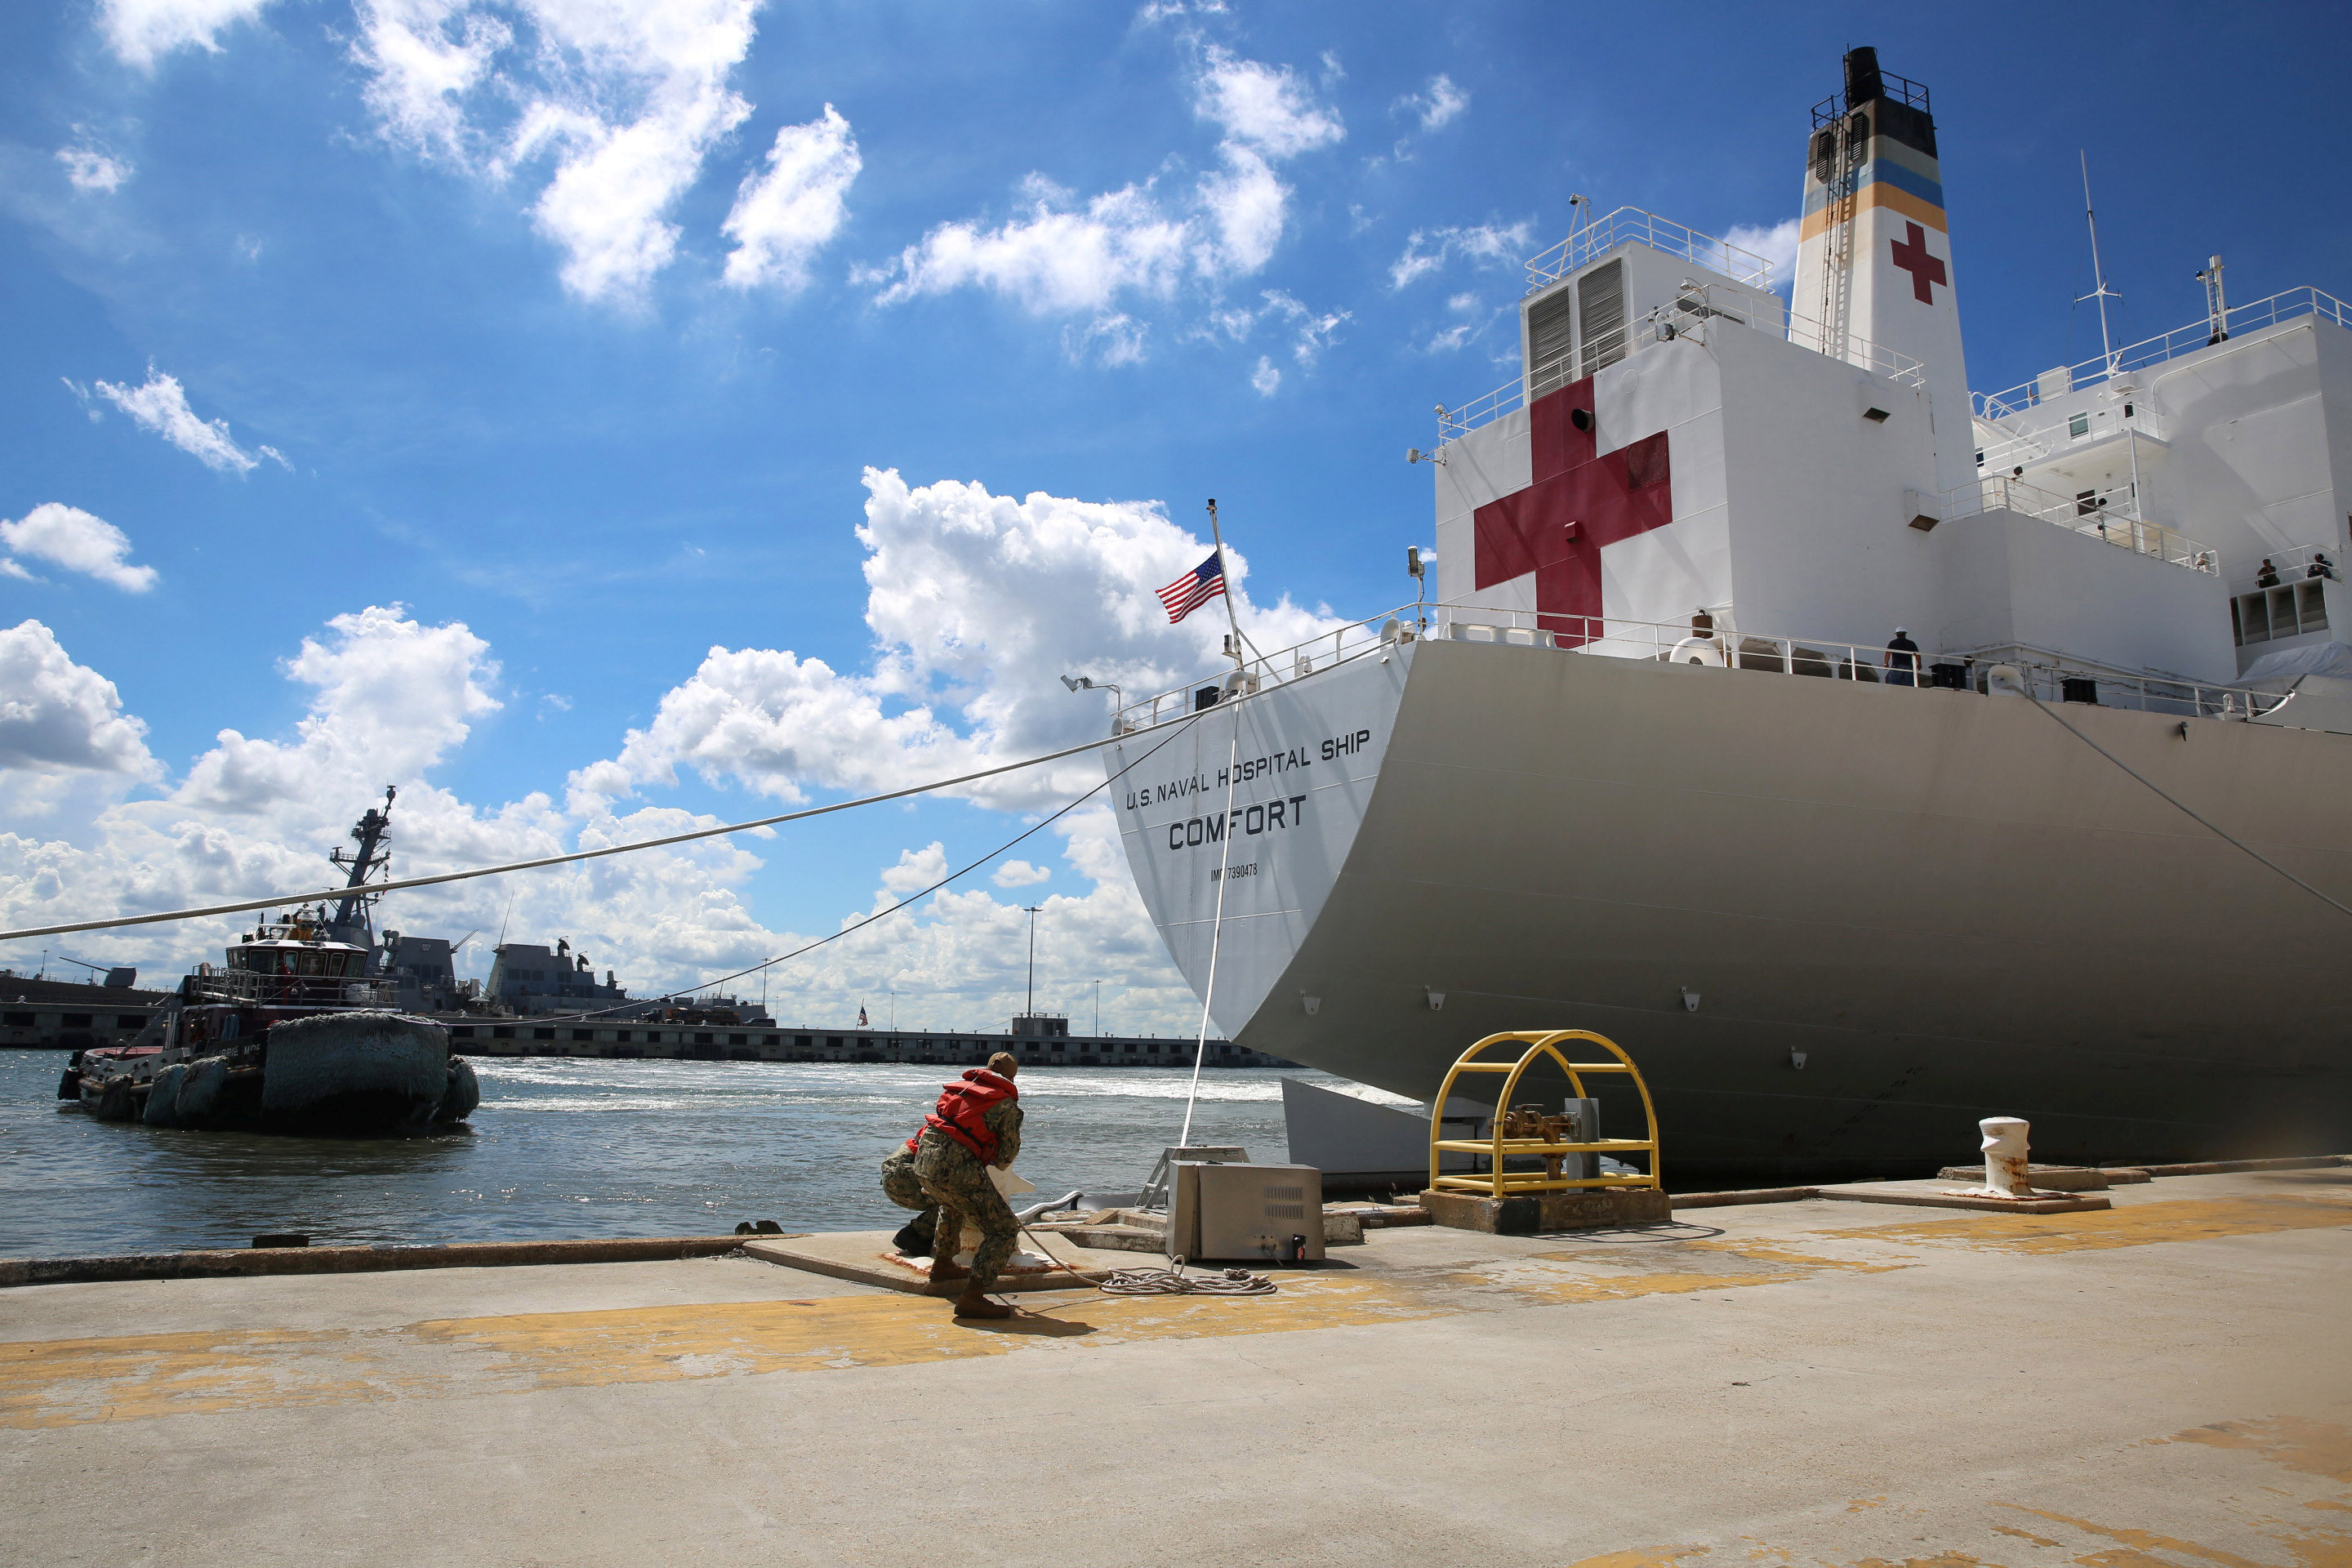 A U.S. Navy handout photo of sailors casting off mooring lines to the Command hospital ship USNS Comfort as the ship evacuates Naval Station Norfolk in preparation for Hurricane Florence in Norfolk